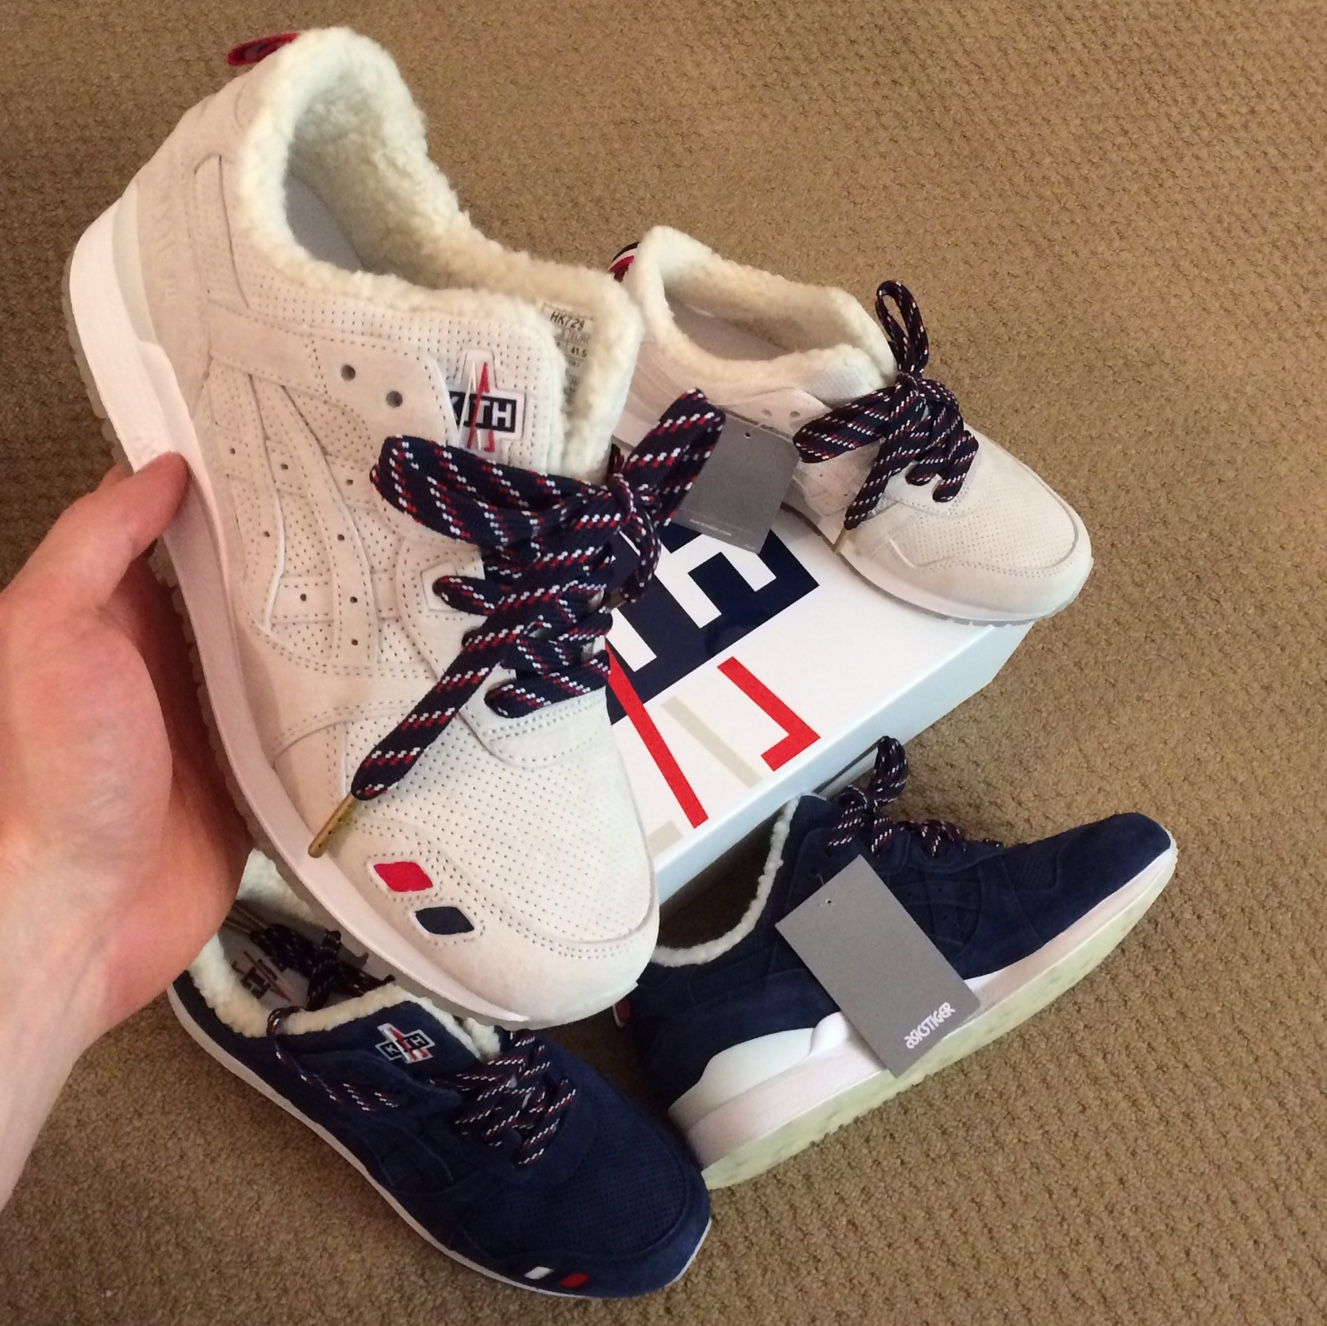 Kith x Moncler x Asics Gel Lyte III Size 10.5 Brand New in